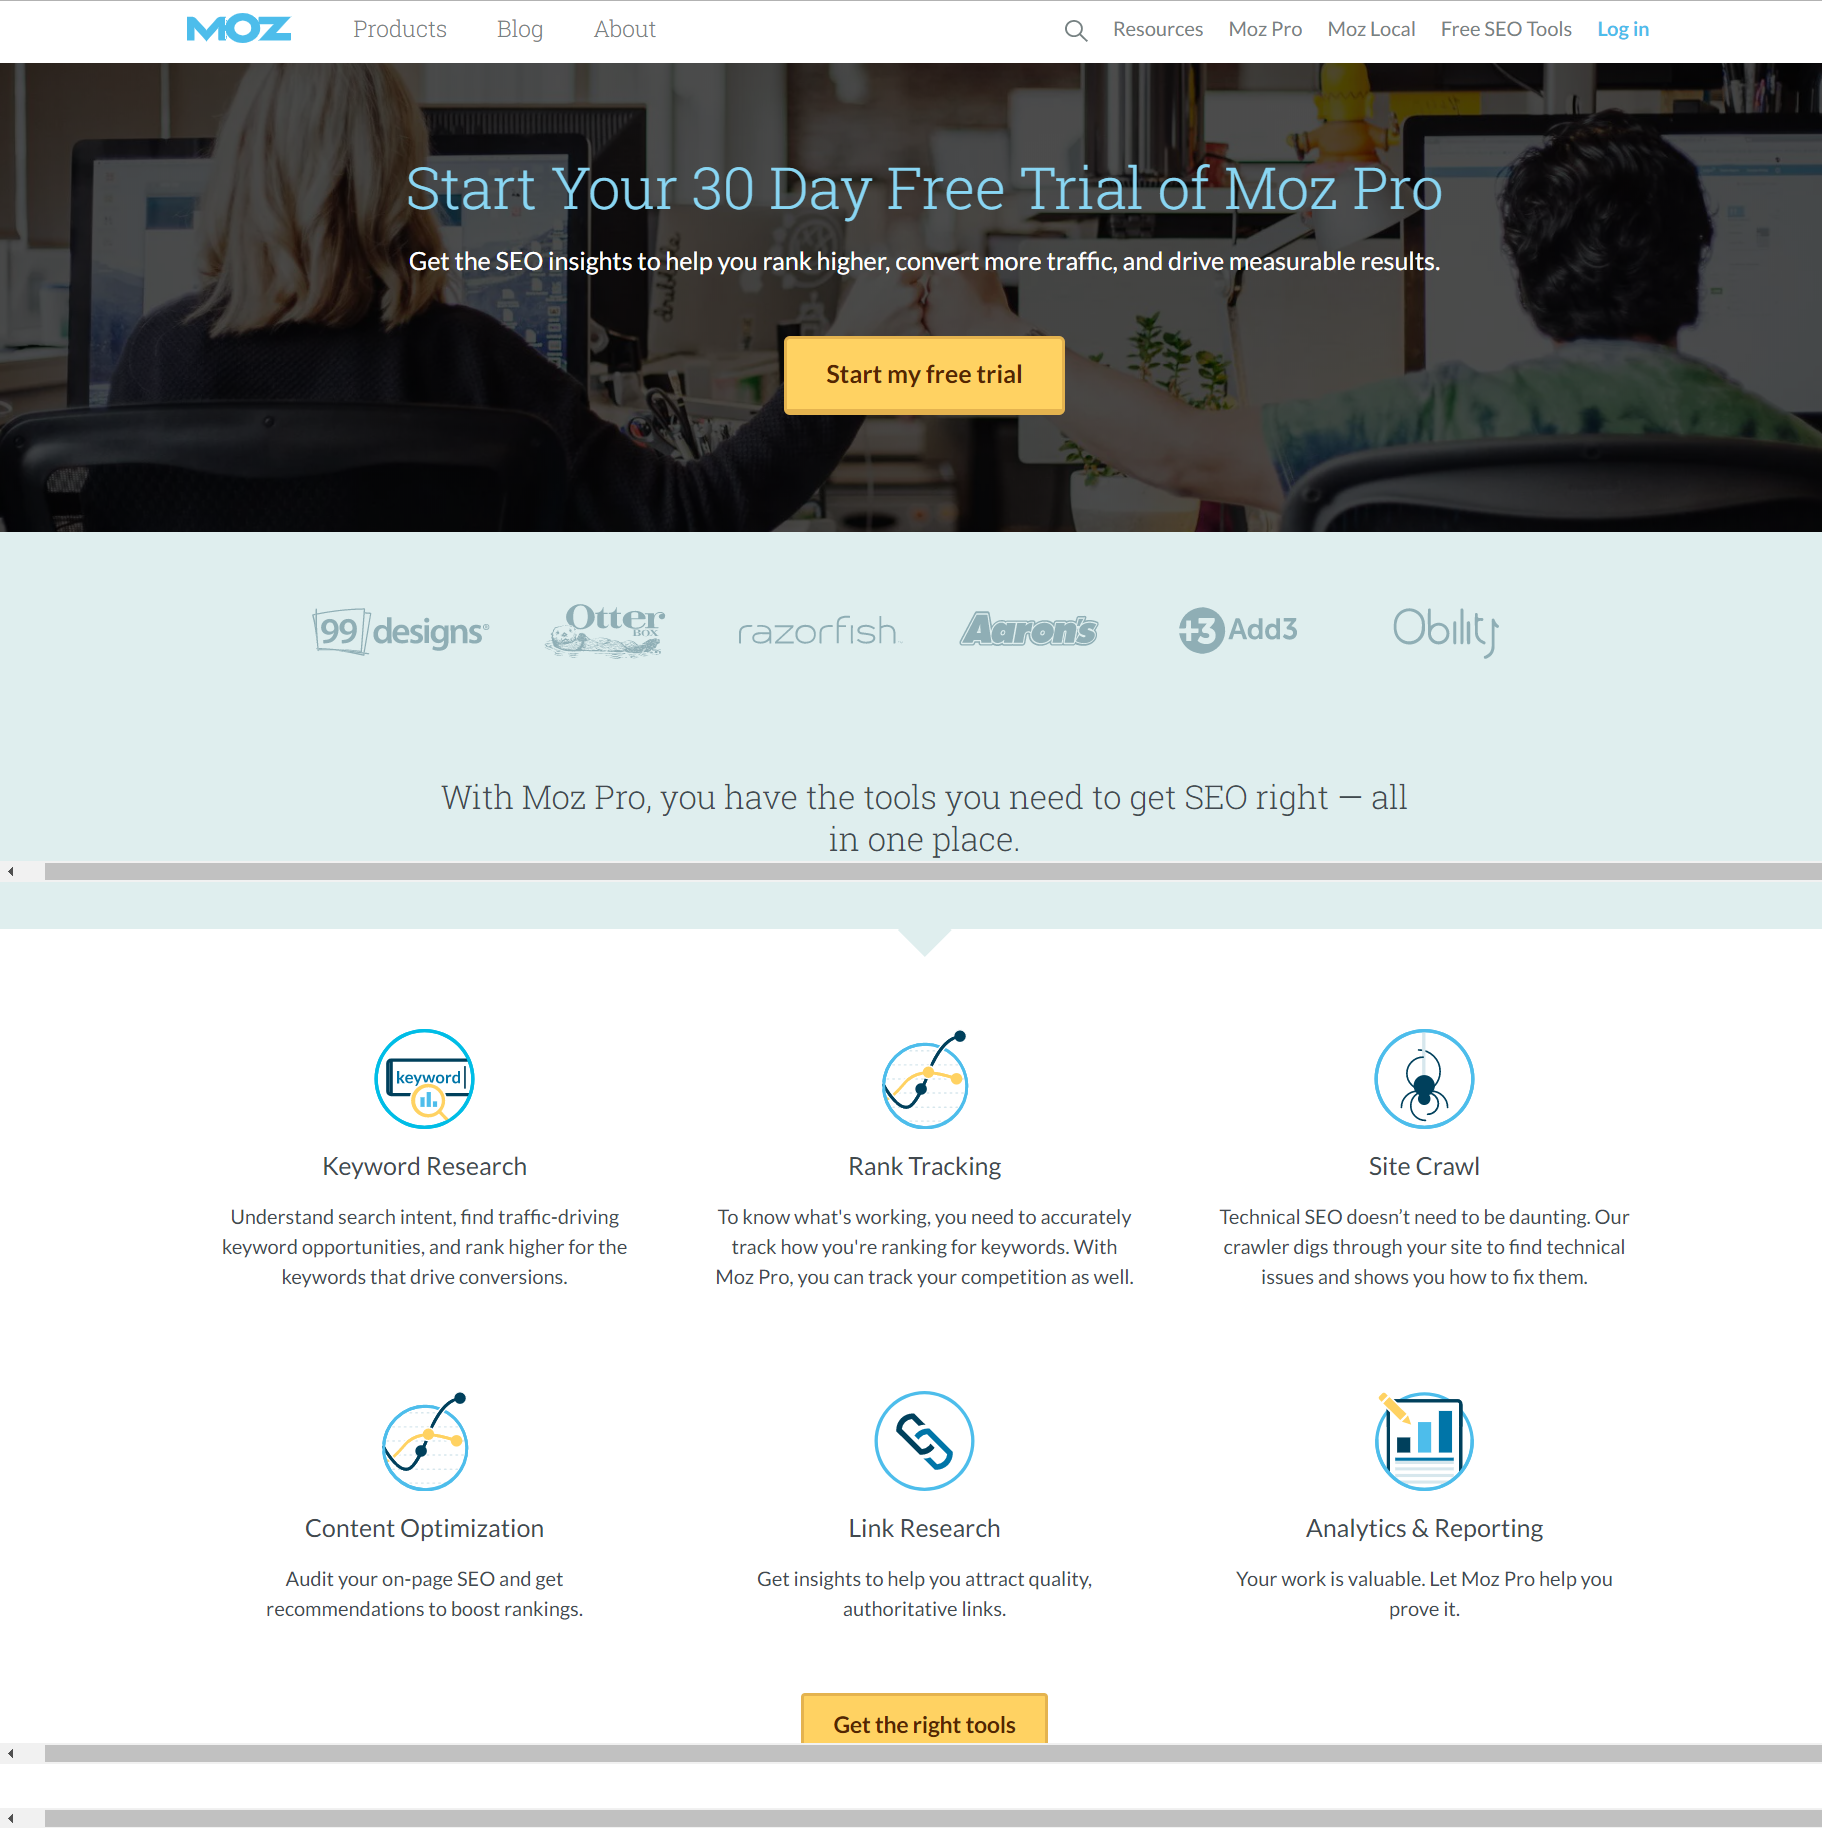 A high converting landing page conveys a lot of information in a simple, concise way